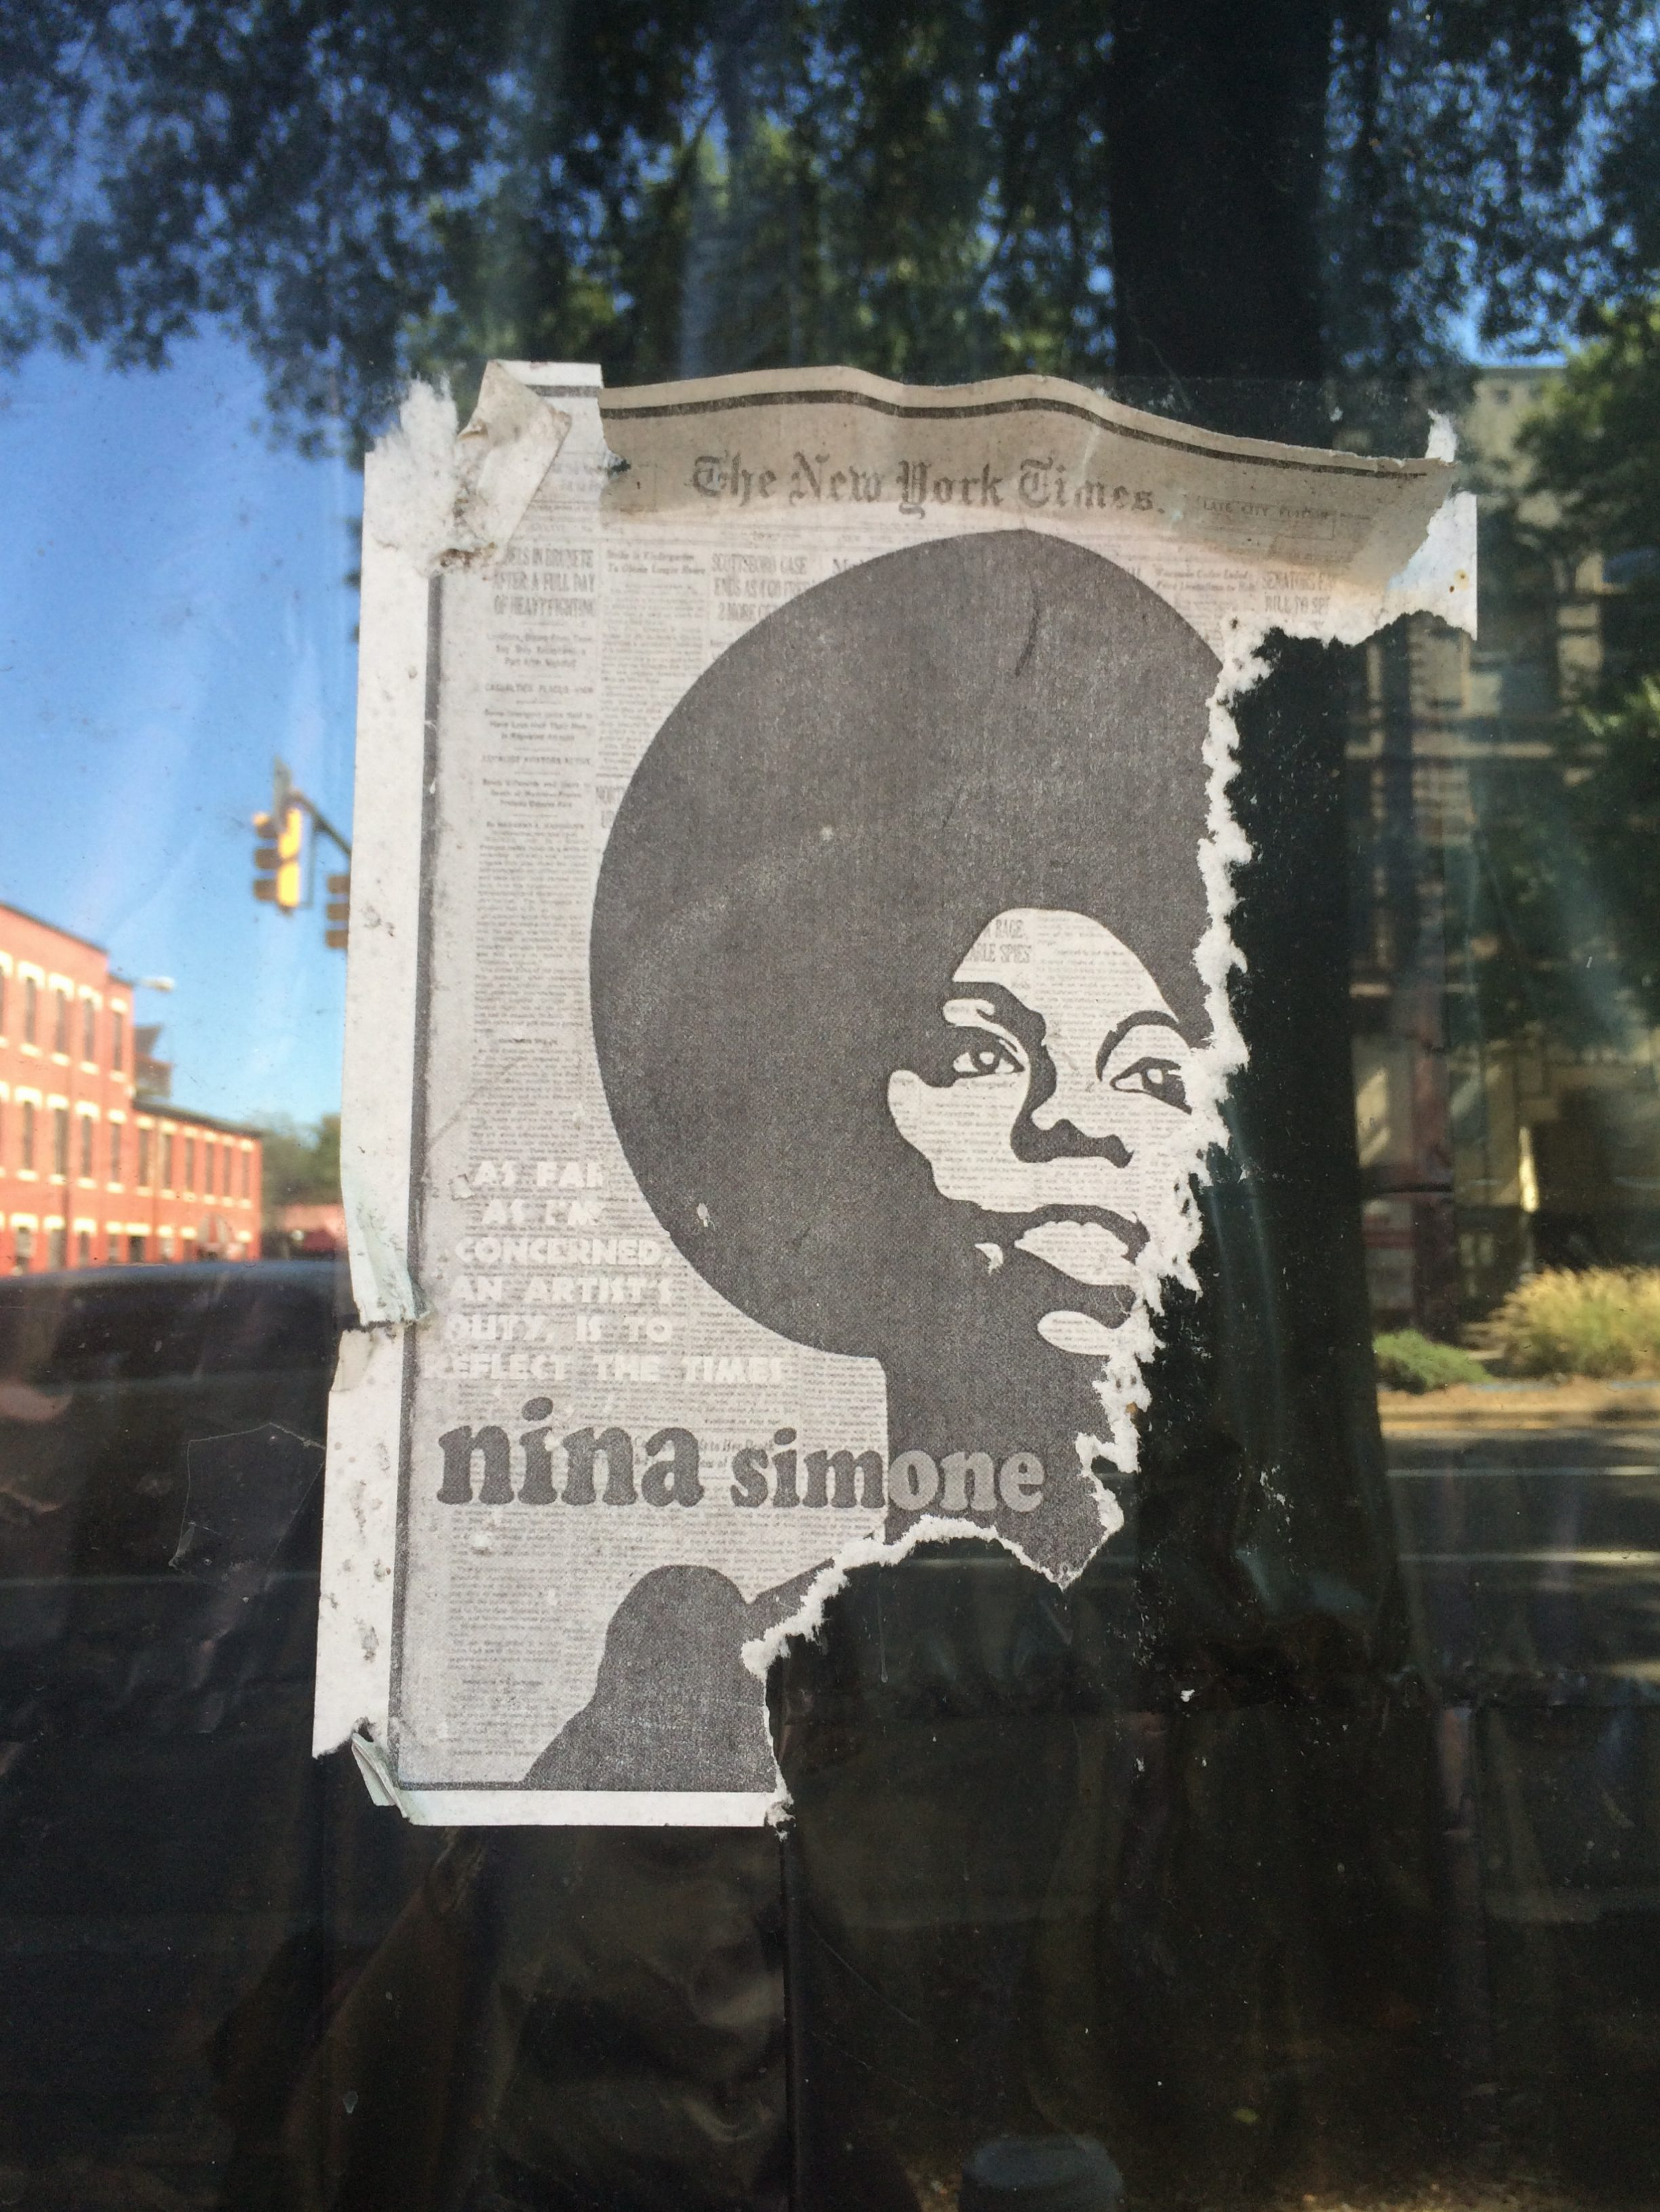 A picture of Nina Simone is screen printed on top of an old New York Times.